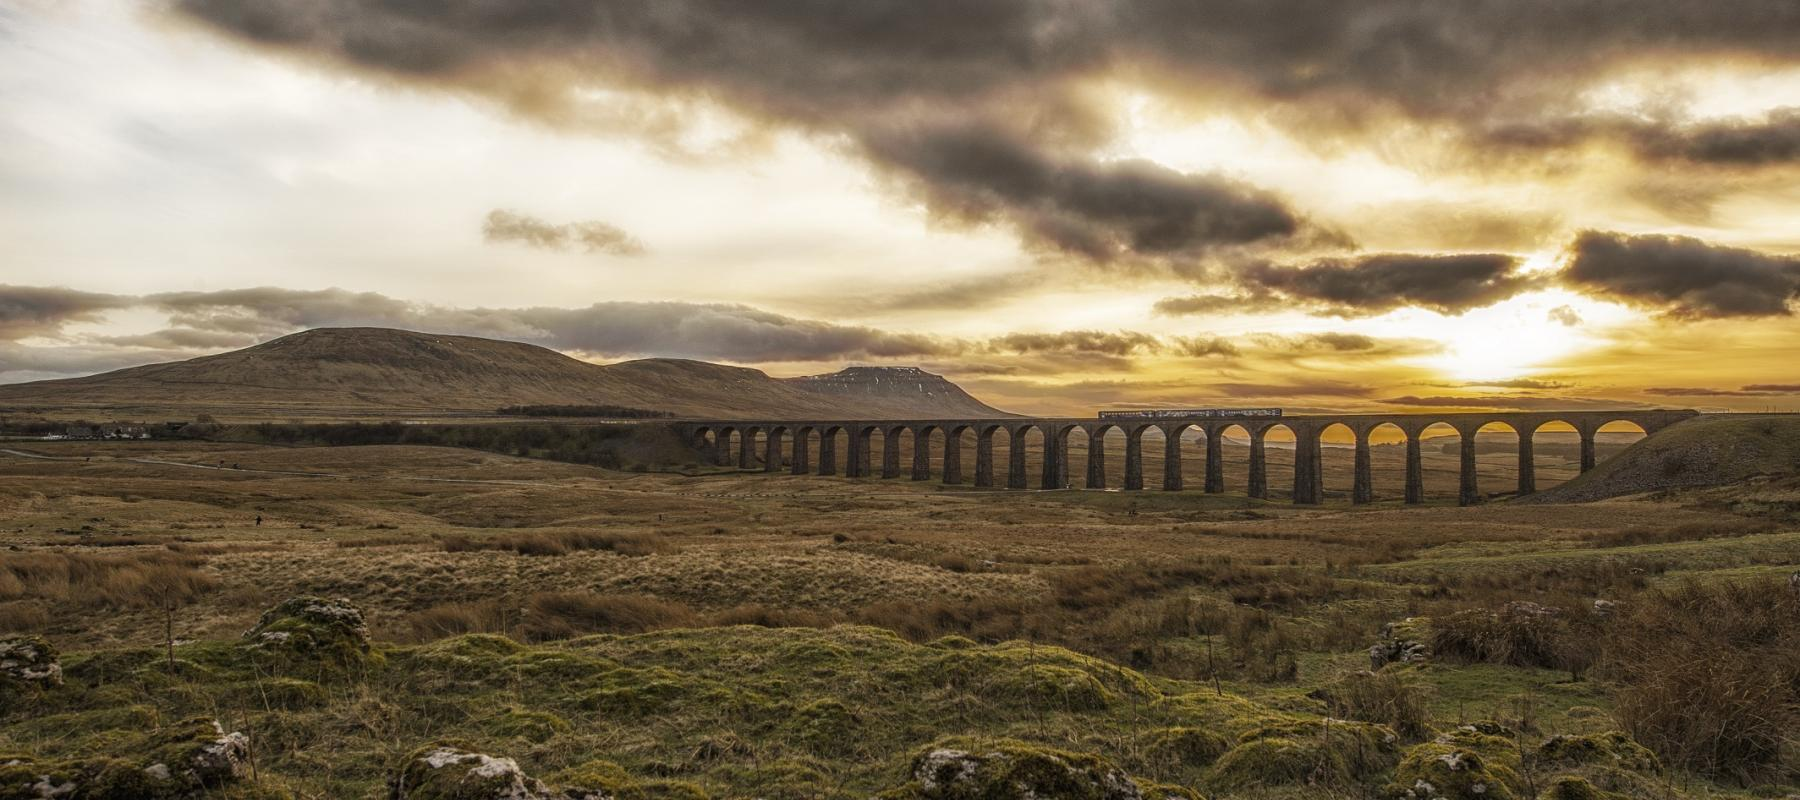 Ribblehead Viaduct, Yorkshire Dales